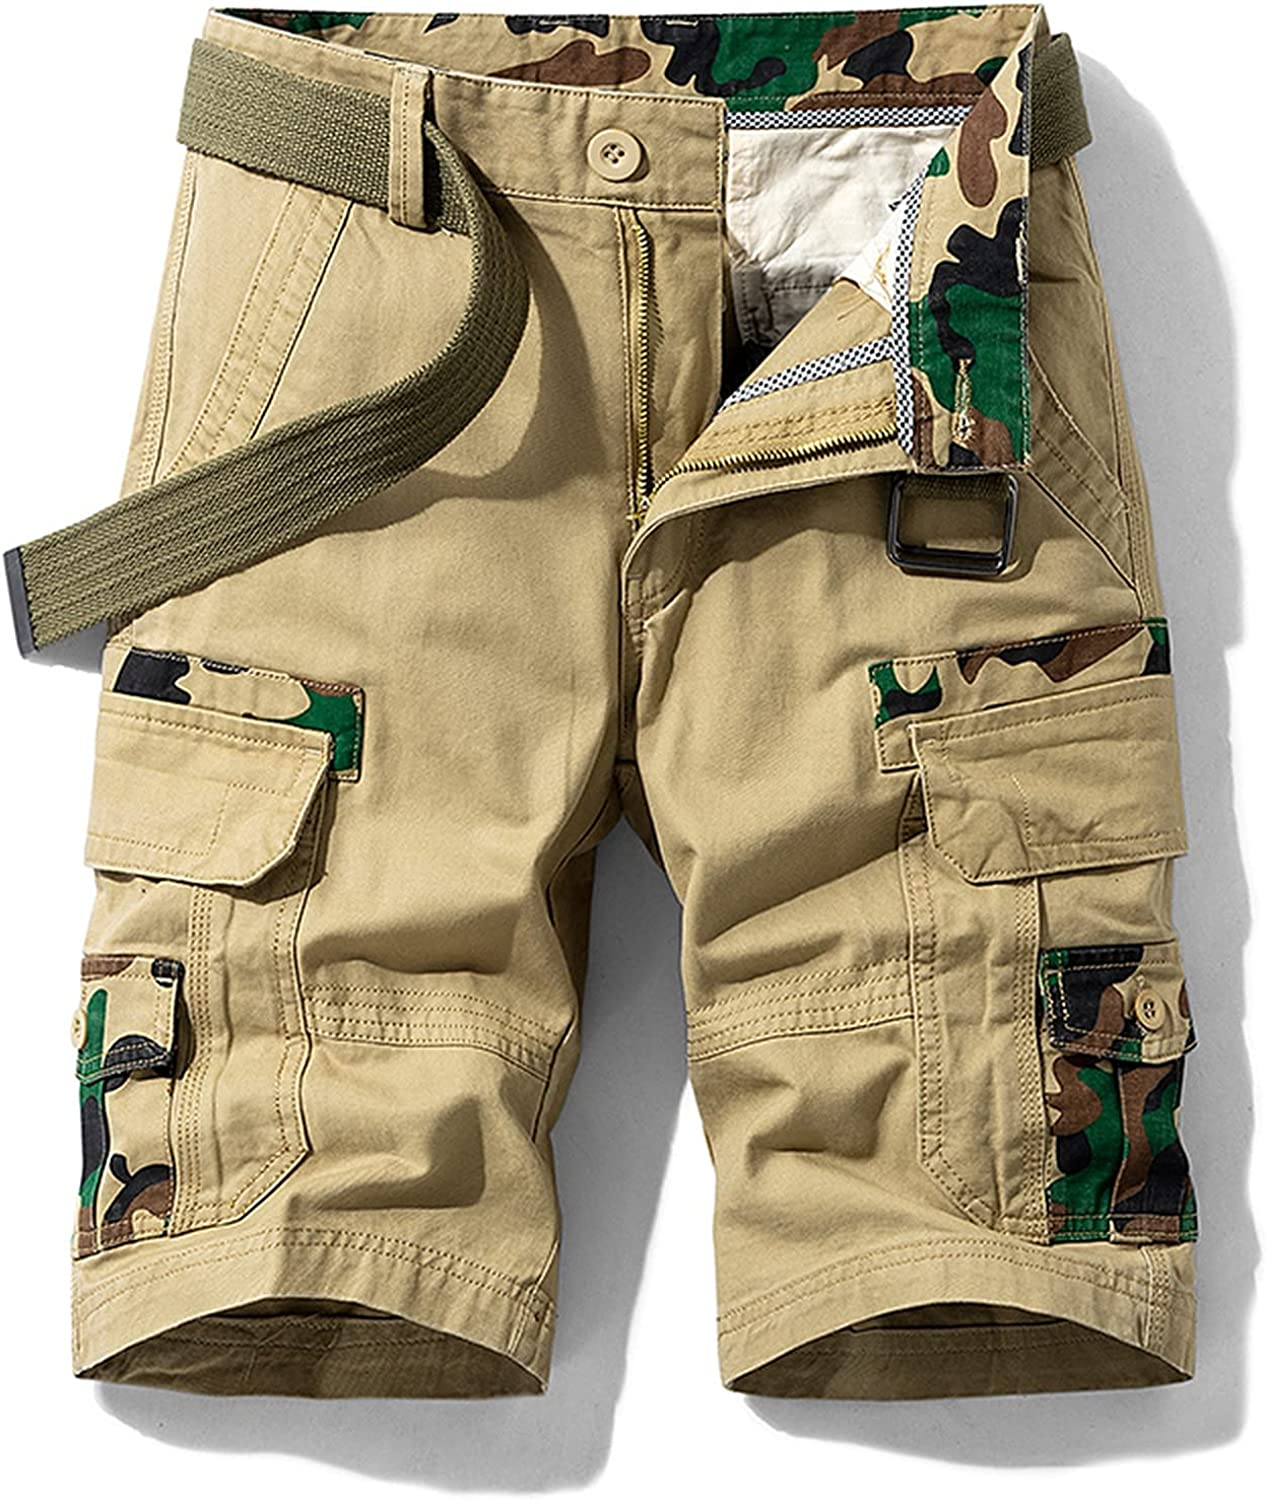 Sukyy Summer Camouflage Cargo Shorts Men Army Green Jogger Tactical Military Cotton Casual Loose